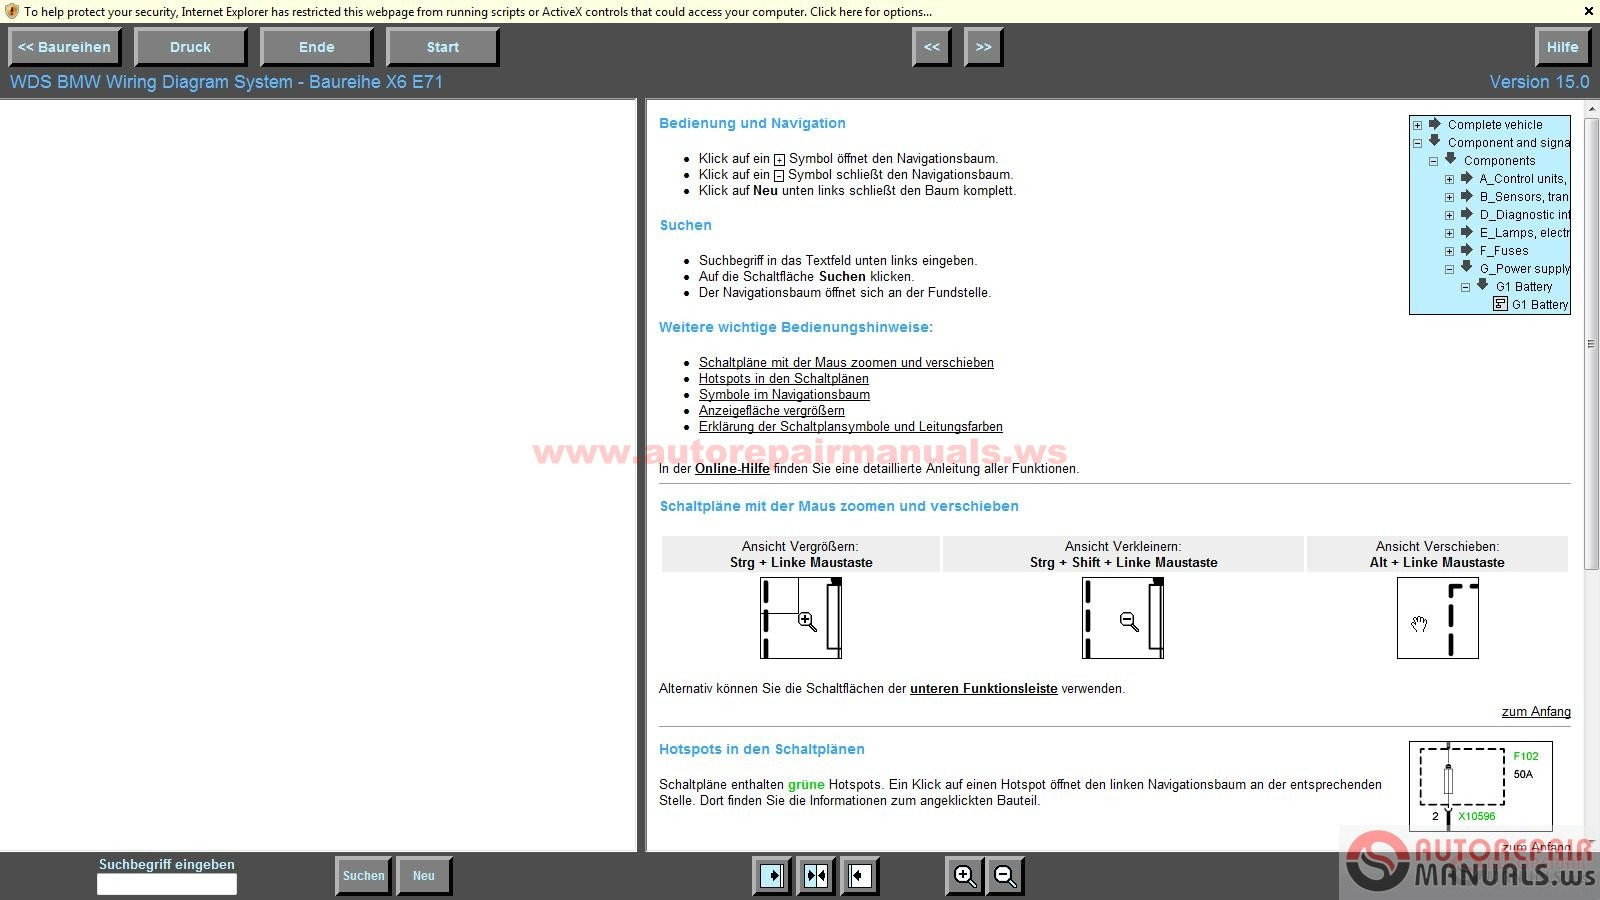 hight resolution of bmw wds v15 and mini wds v7 wiring diagram system free download now